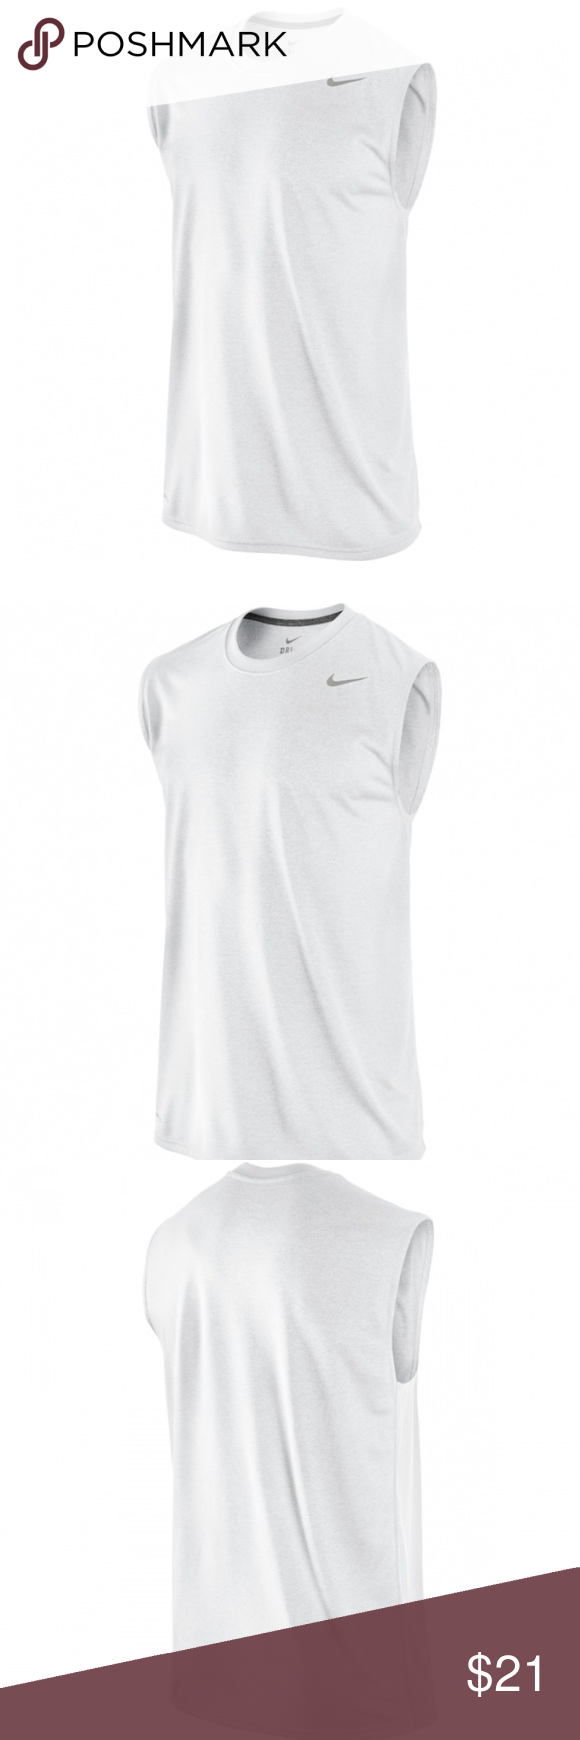 f83c10b1 Nike Dry Legend Poly Sleeveless Top Size XL NWT NWT | My Posh Picks